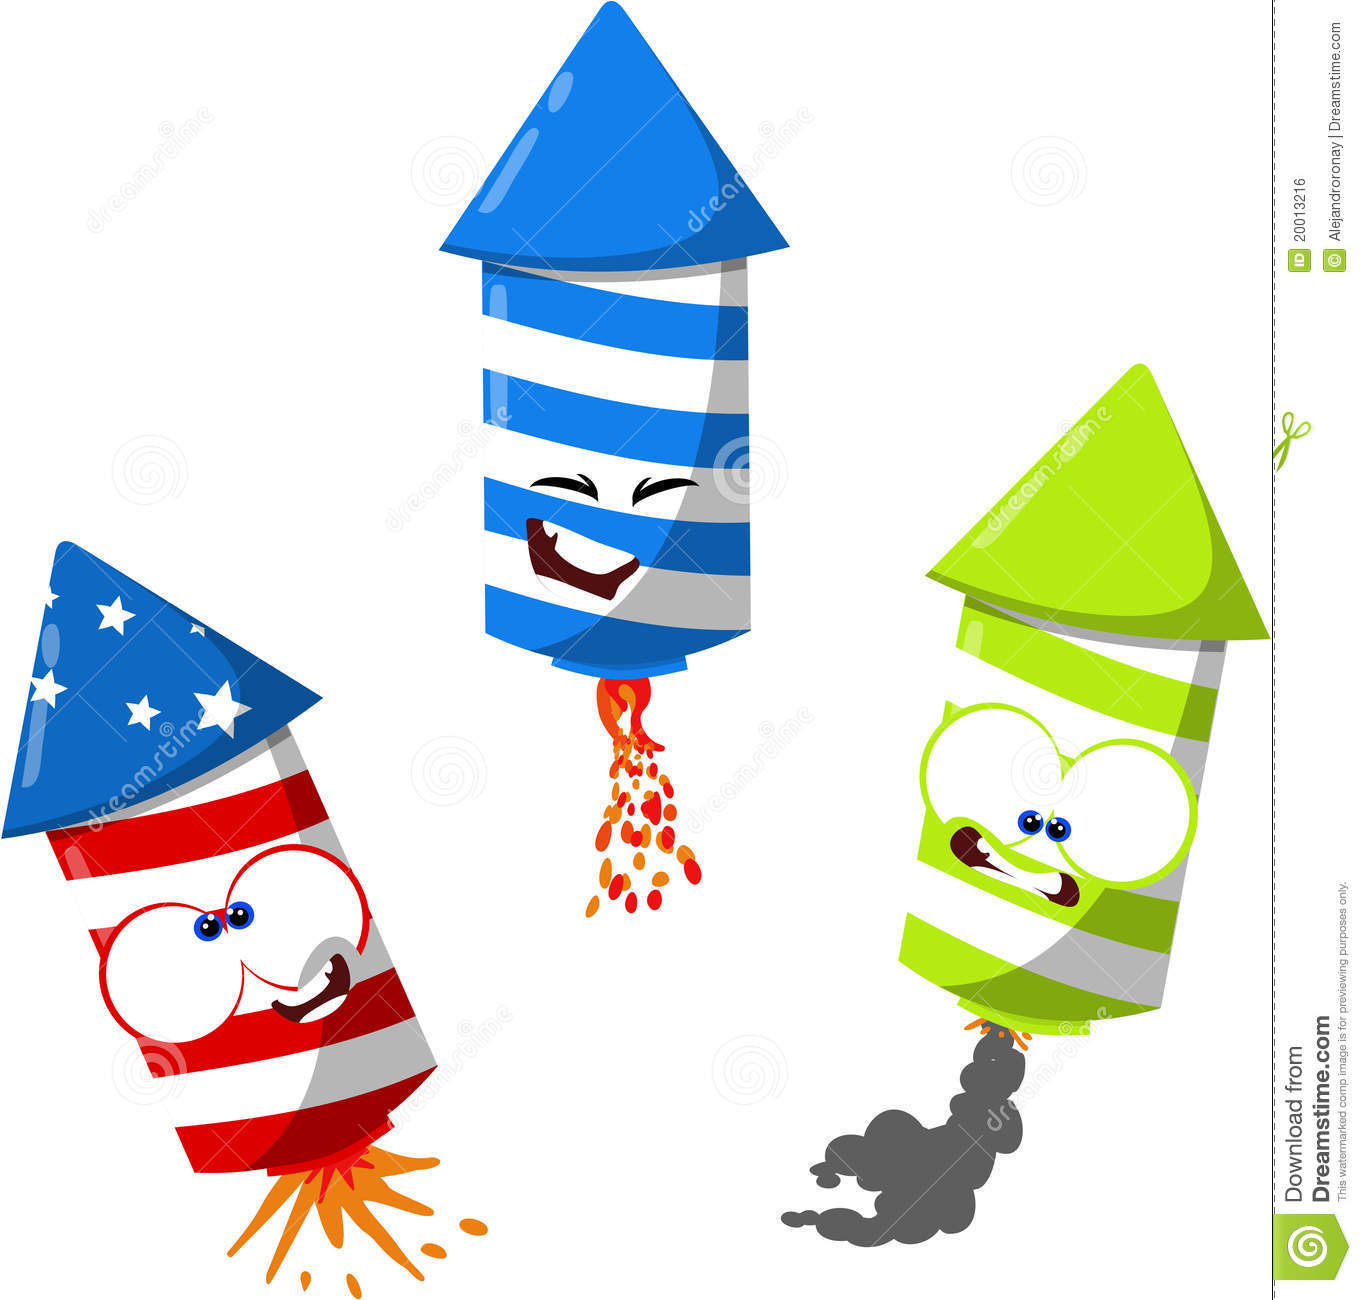 Cute 4th of july fireworks stock illustration. Illustration of.